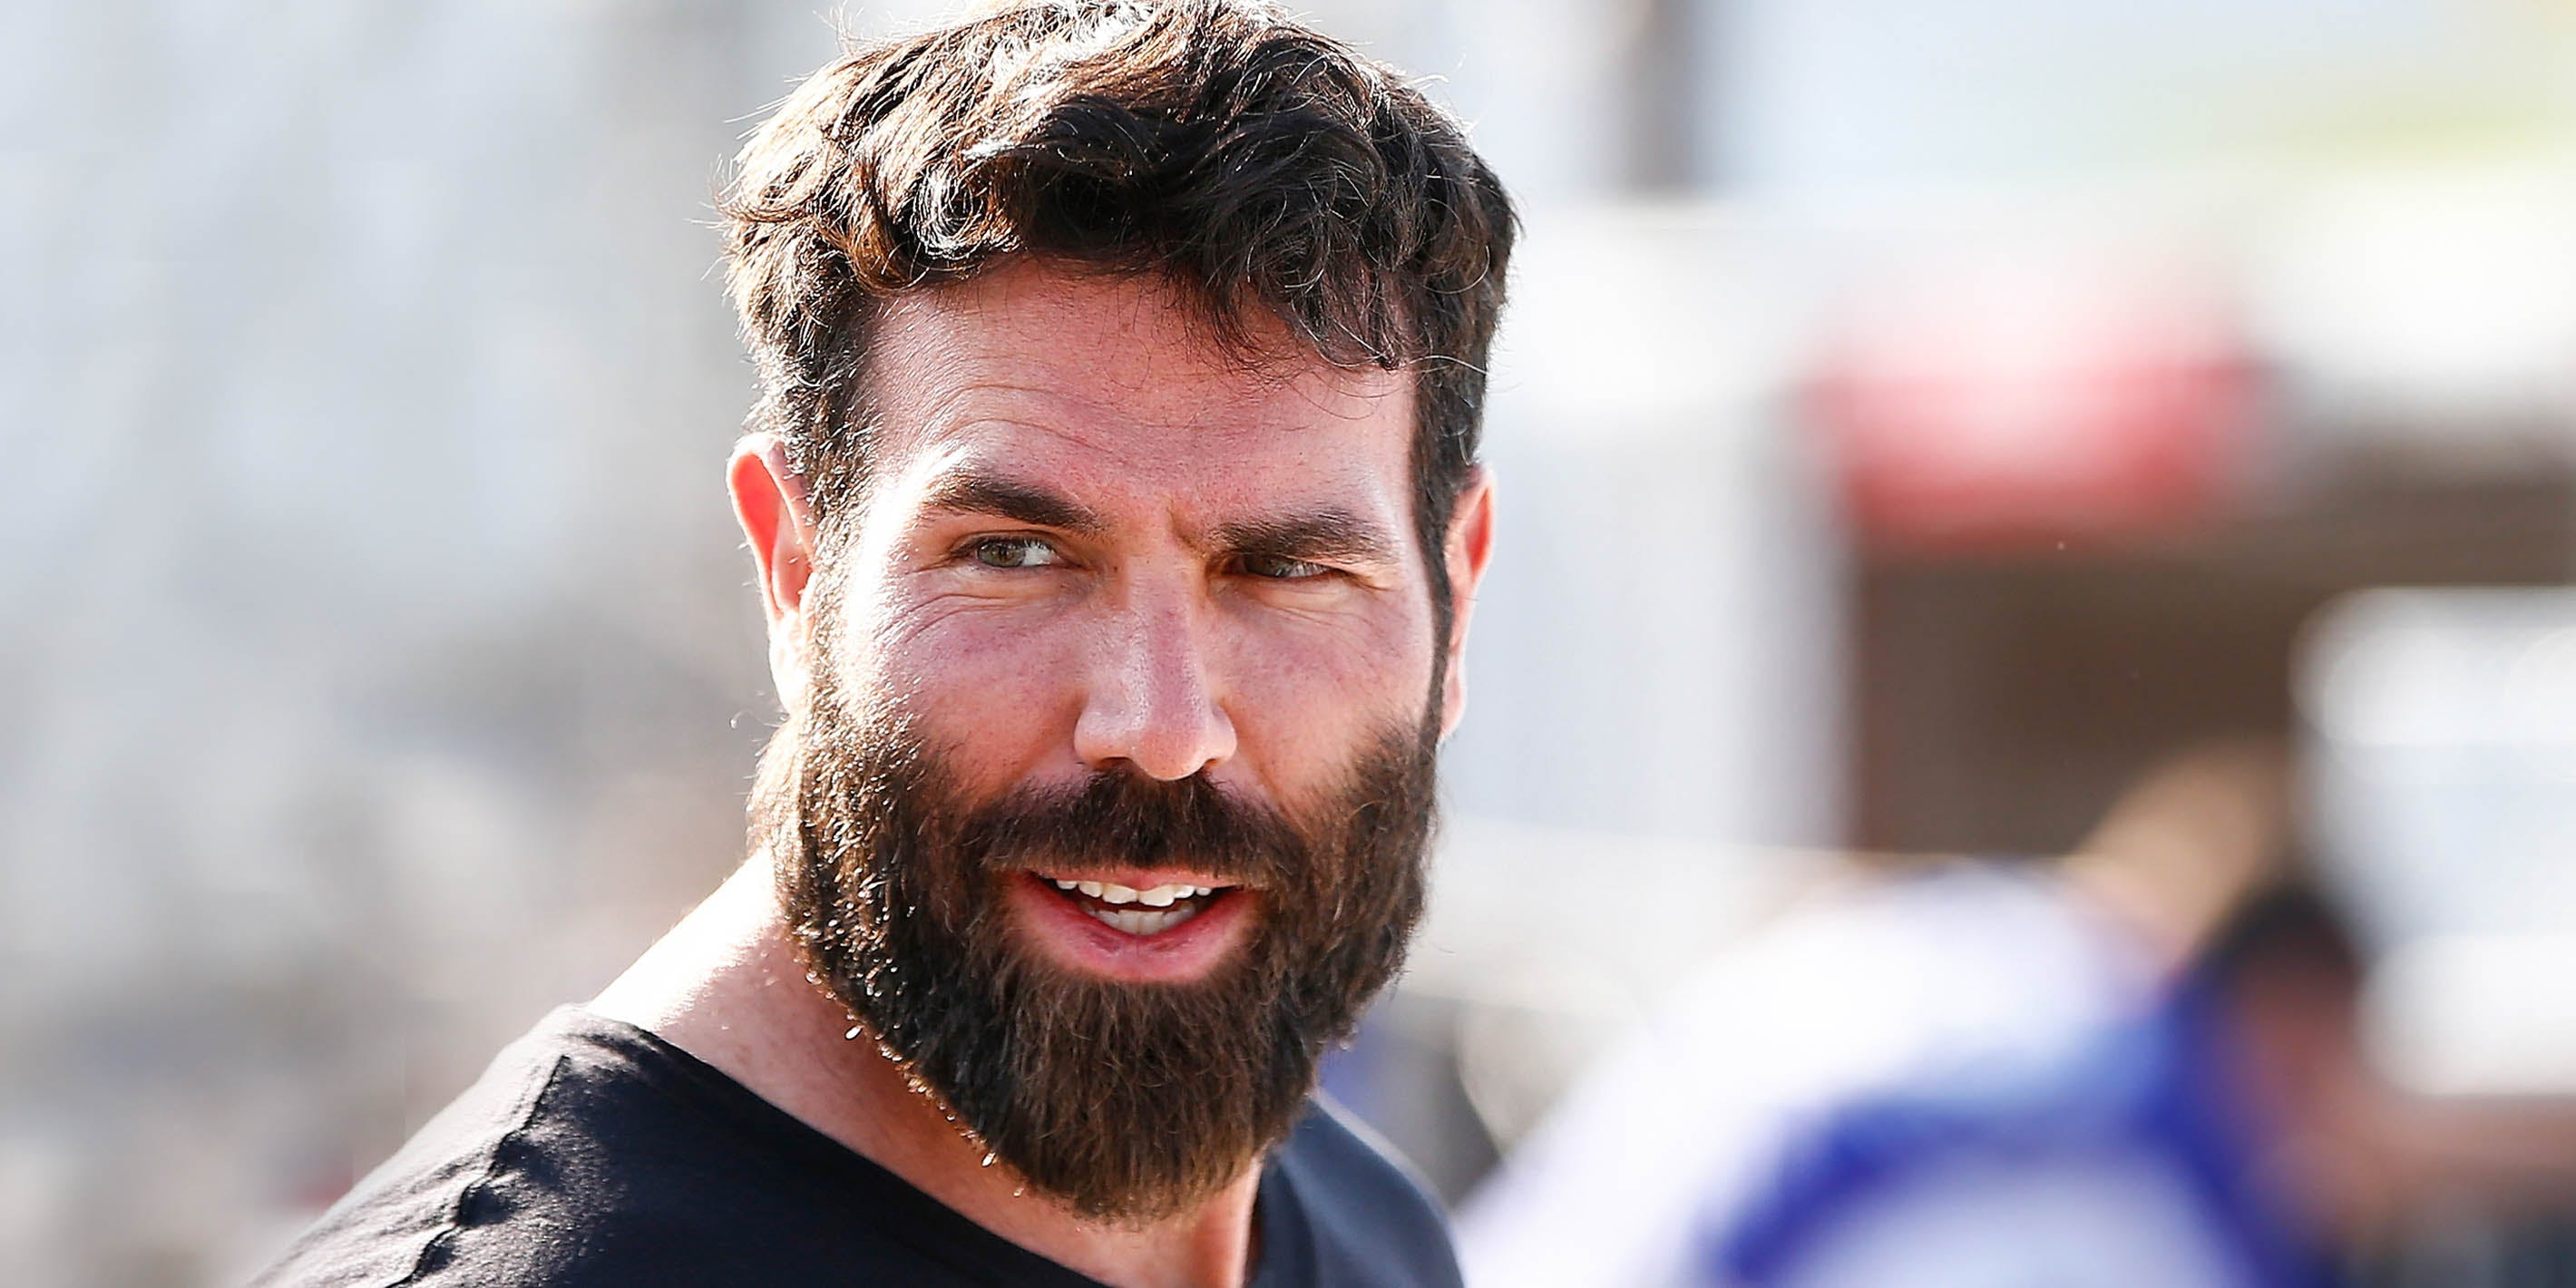 Controversial social media star, Dan Bilzerian, has launched his cannabis company.